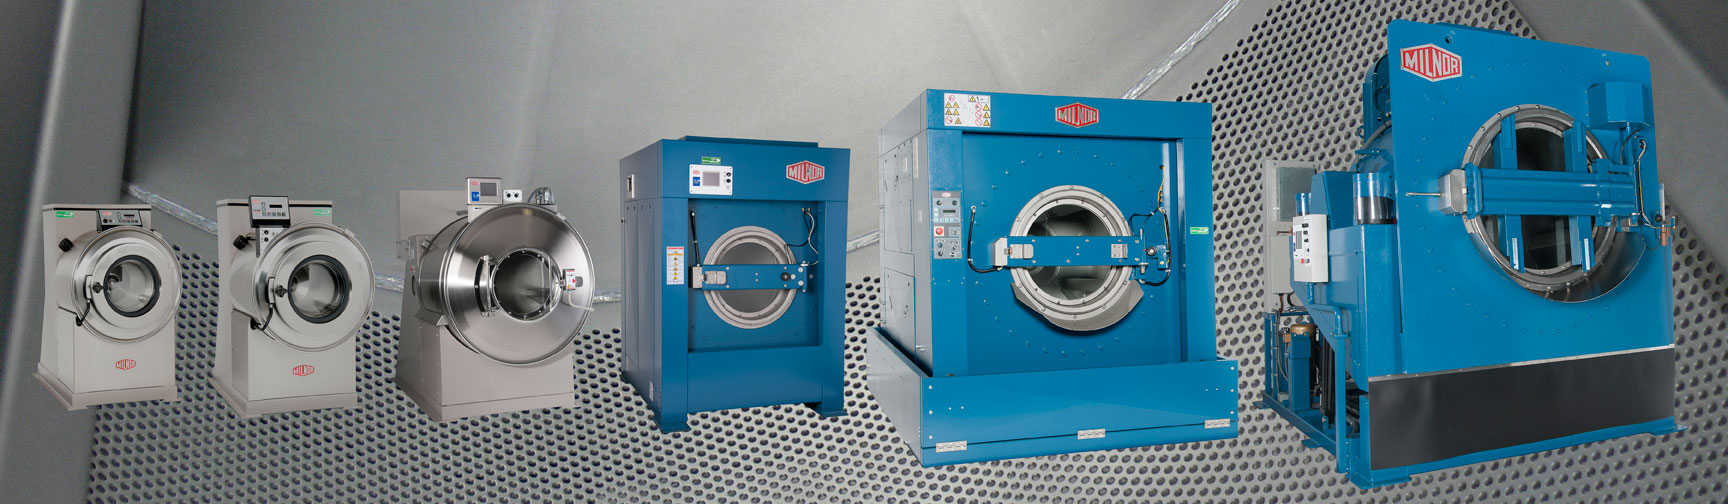 milnor_washer_cover